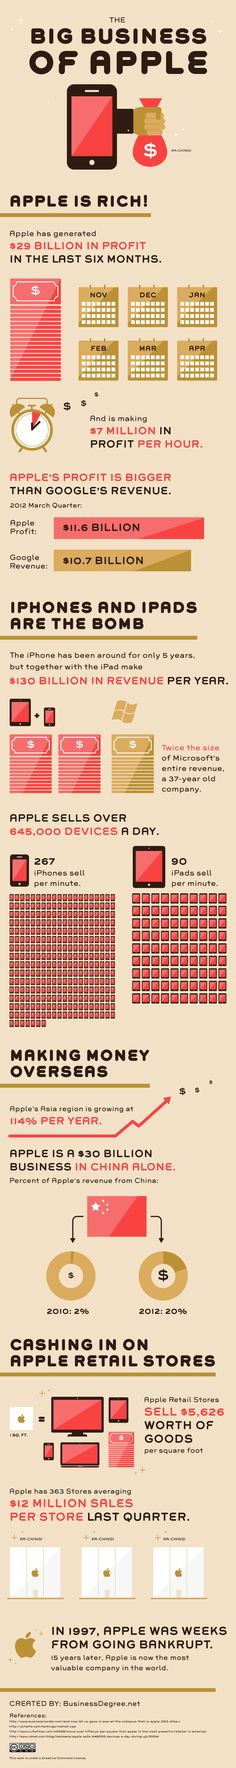 Apple made an innovative product and marketed their product perfectly and now they're making record profit. Apple is a perfect example for students to understand how one product and perfect planning can result in unbelievable success. This infographic will take you through just how much Apple and its iPhone keeps putting in the bank.